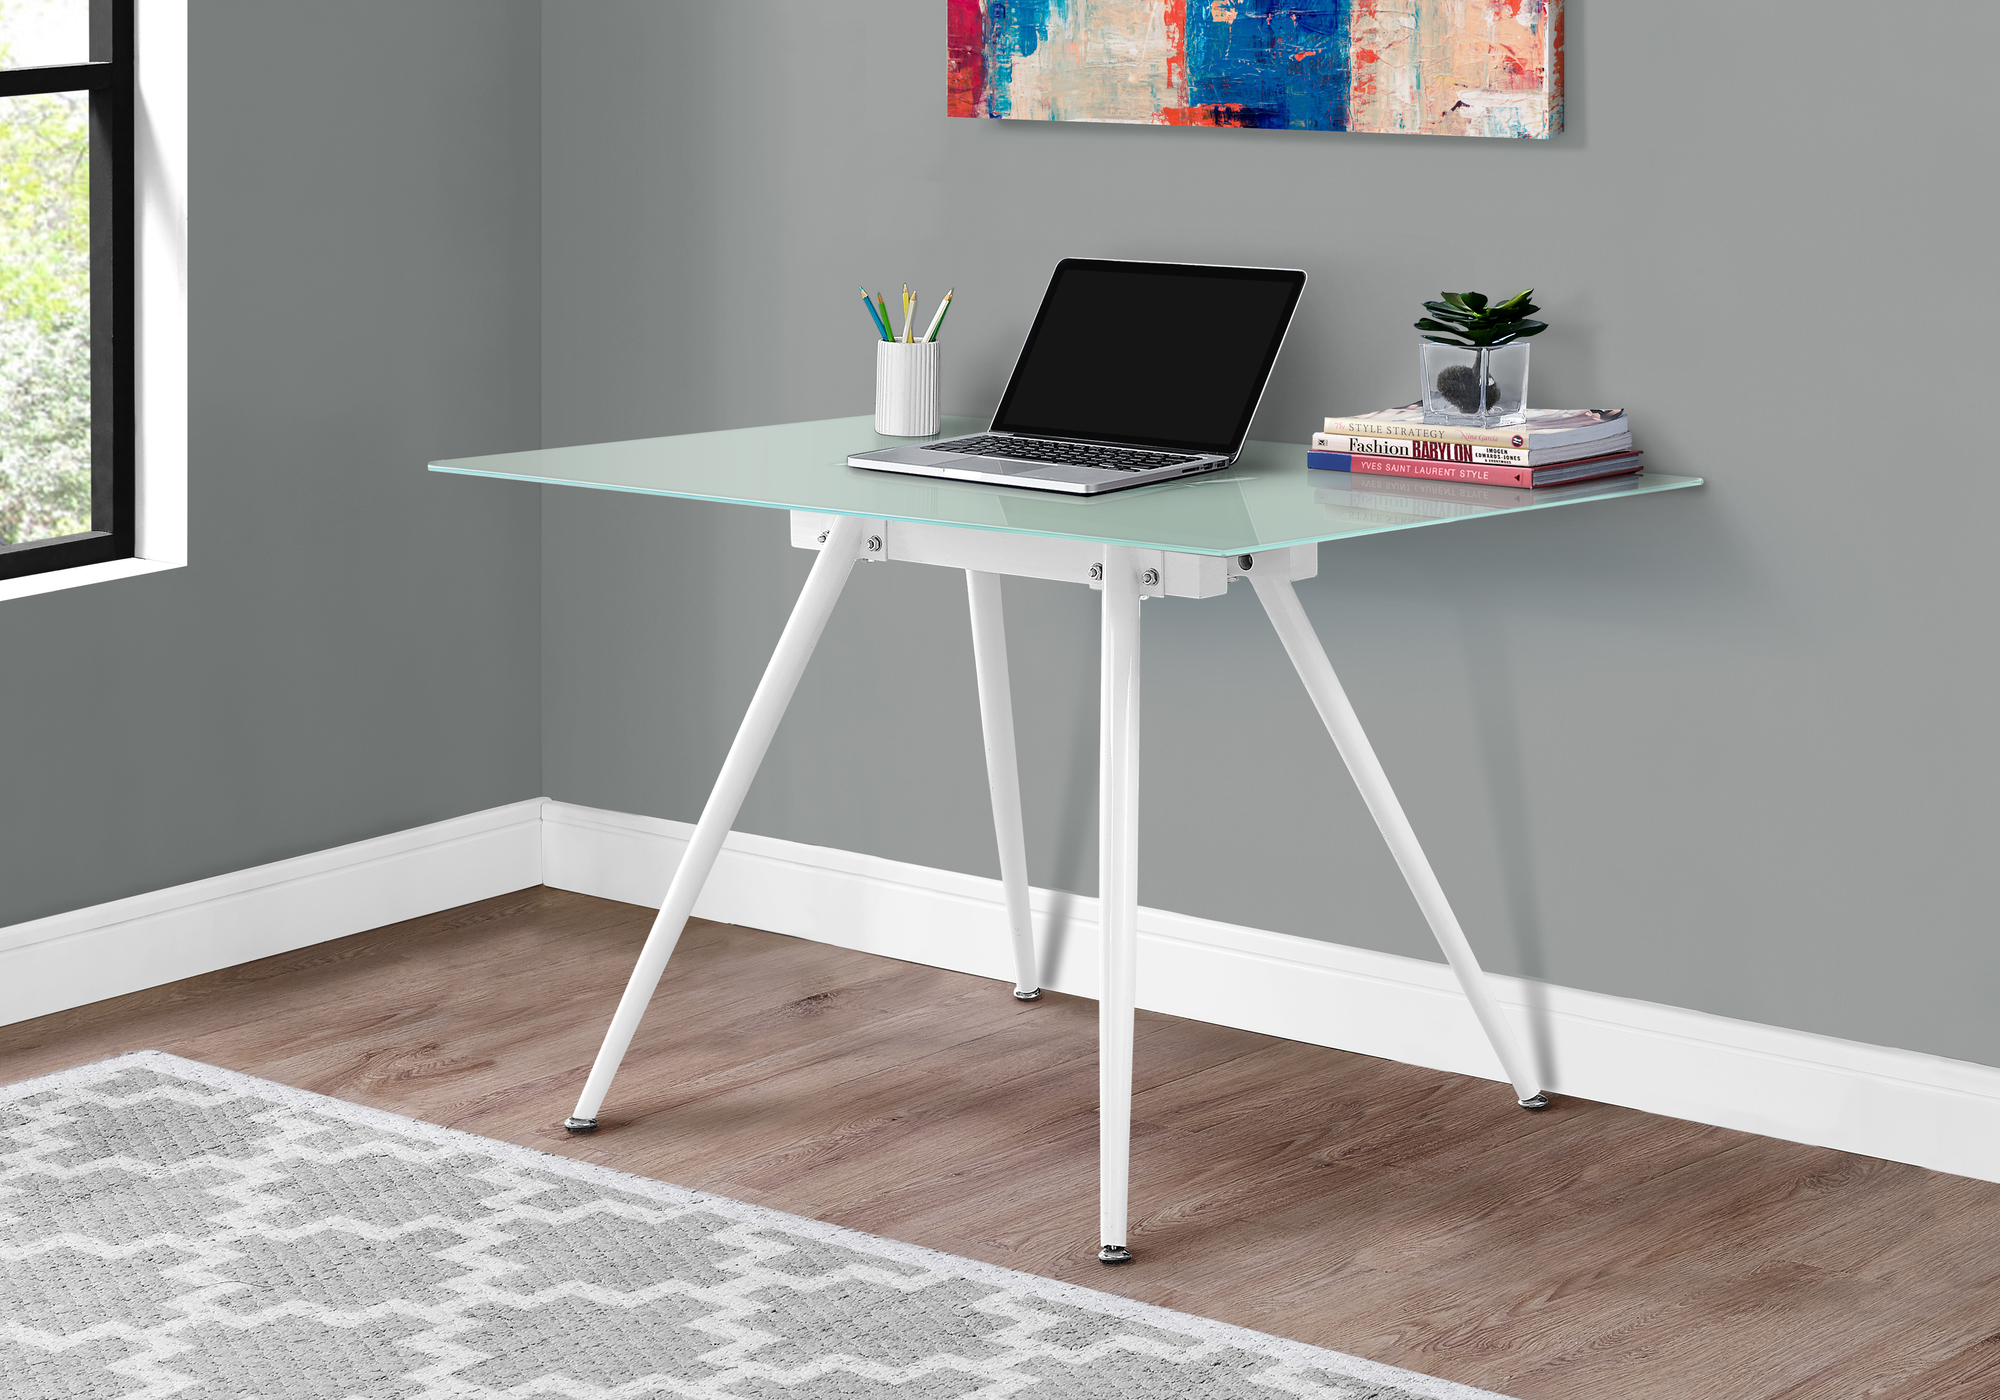 Monarch Specialties I 1032 28 x 48 in. Dining Table with 8 mm Tempered Glass, White